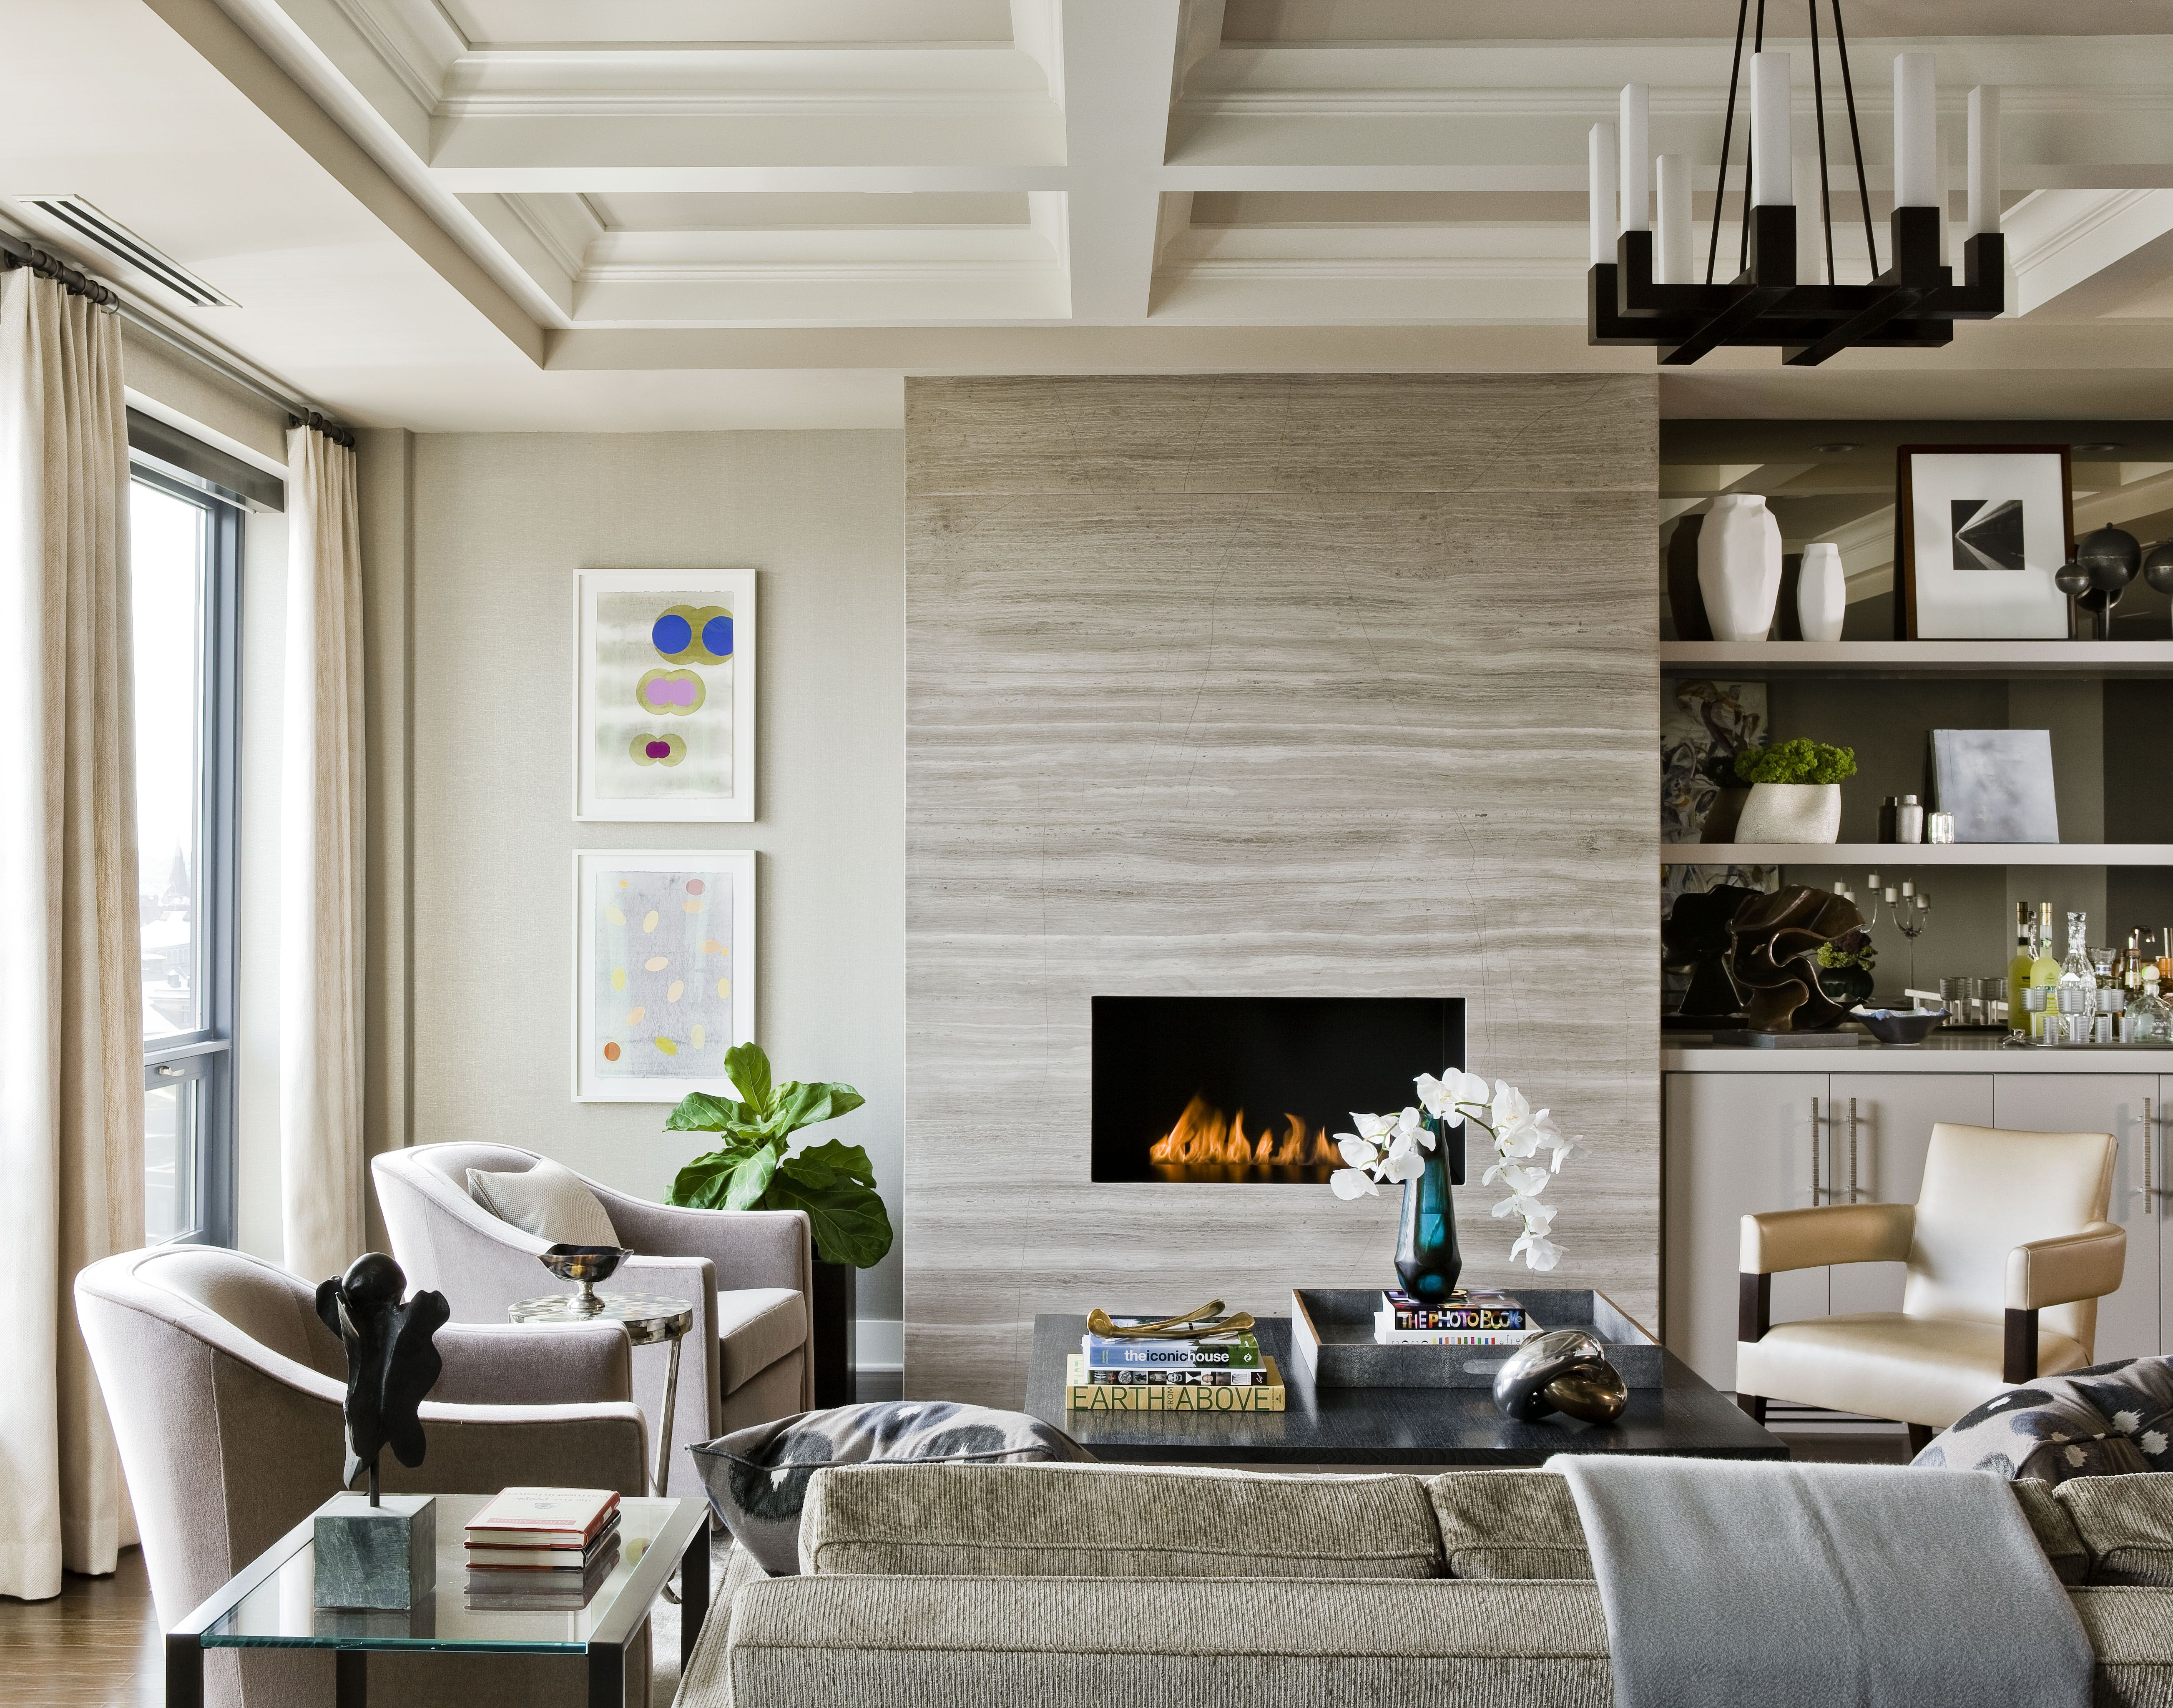 Fireplace Surround: Stone Slabs